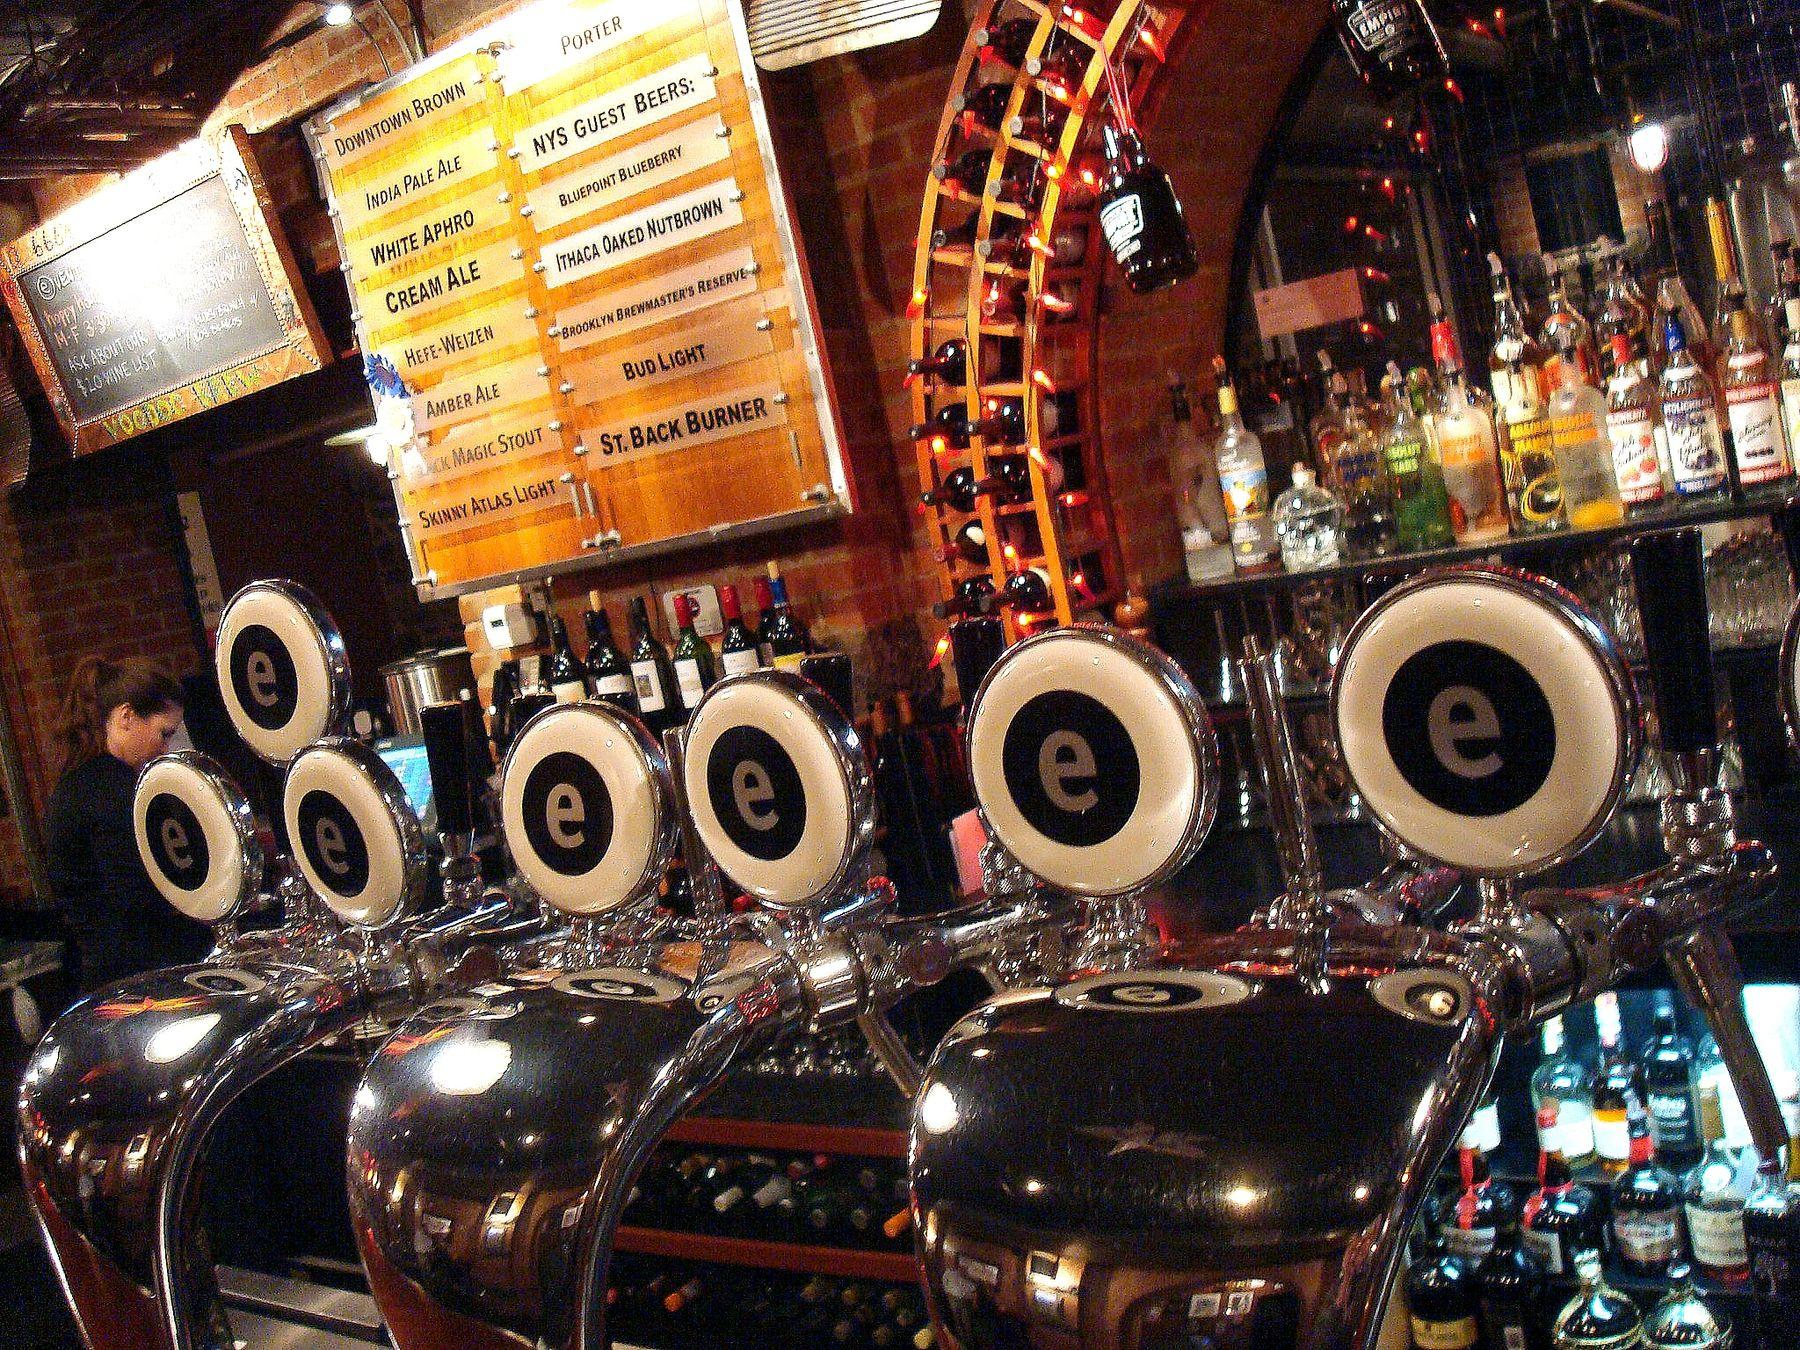 Beer taps at brewery